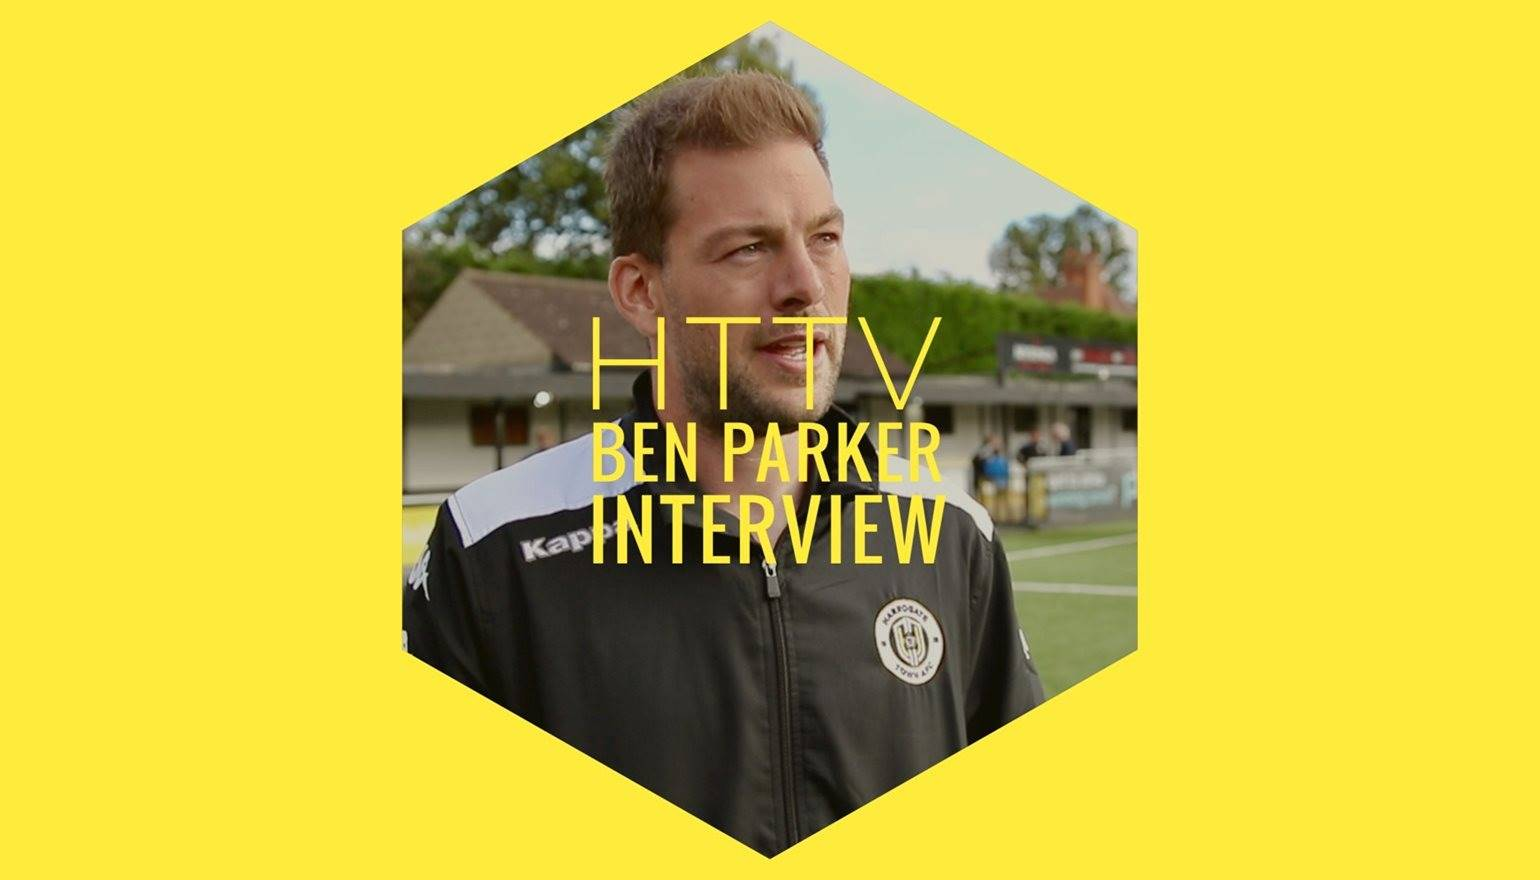 HTTV | Ben Parker Interview